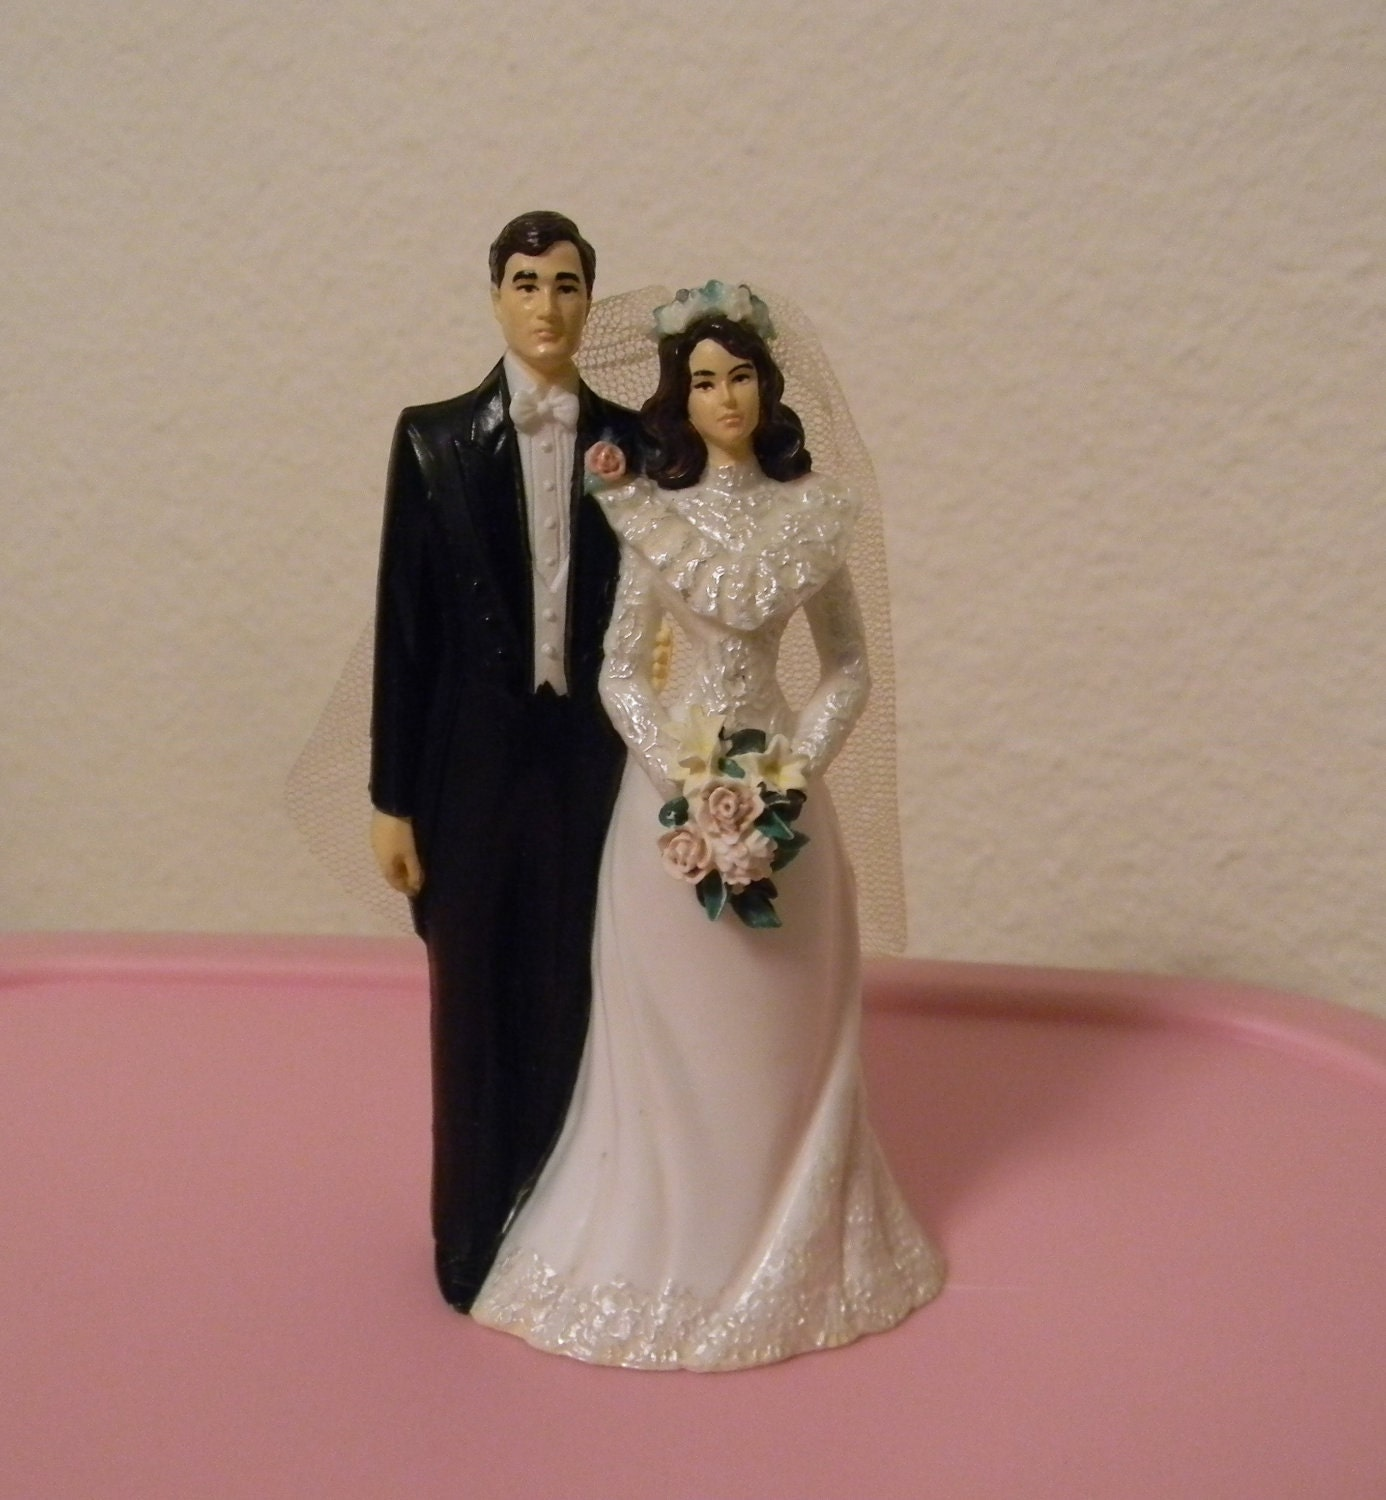 Vintage Bride And Groom Wilton Wedding Cake Topper By PinkJewel